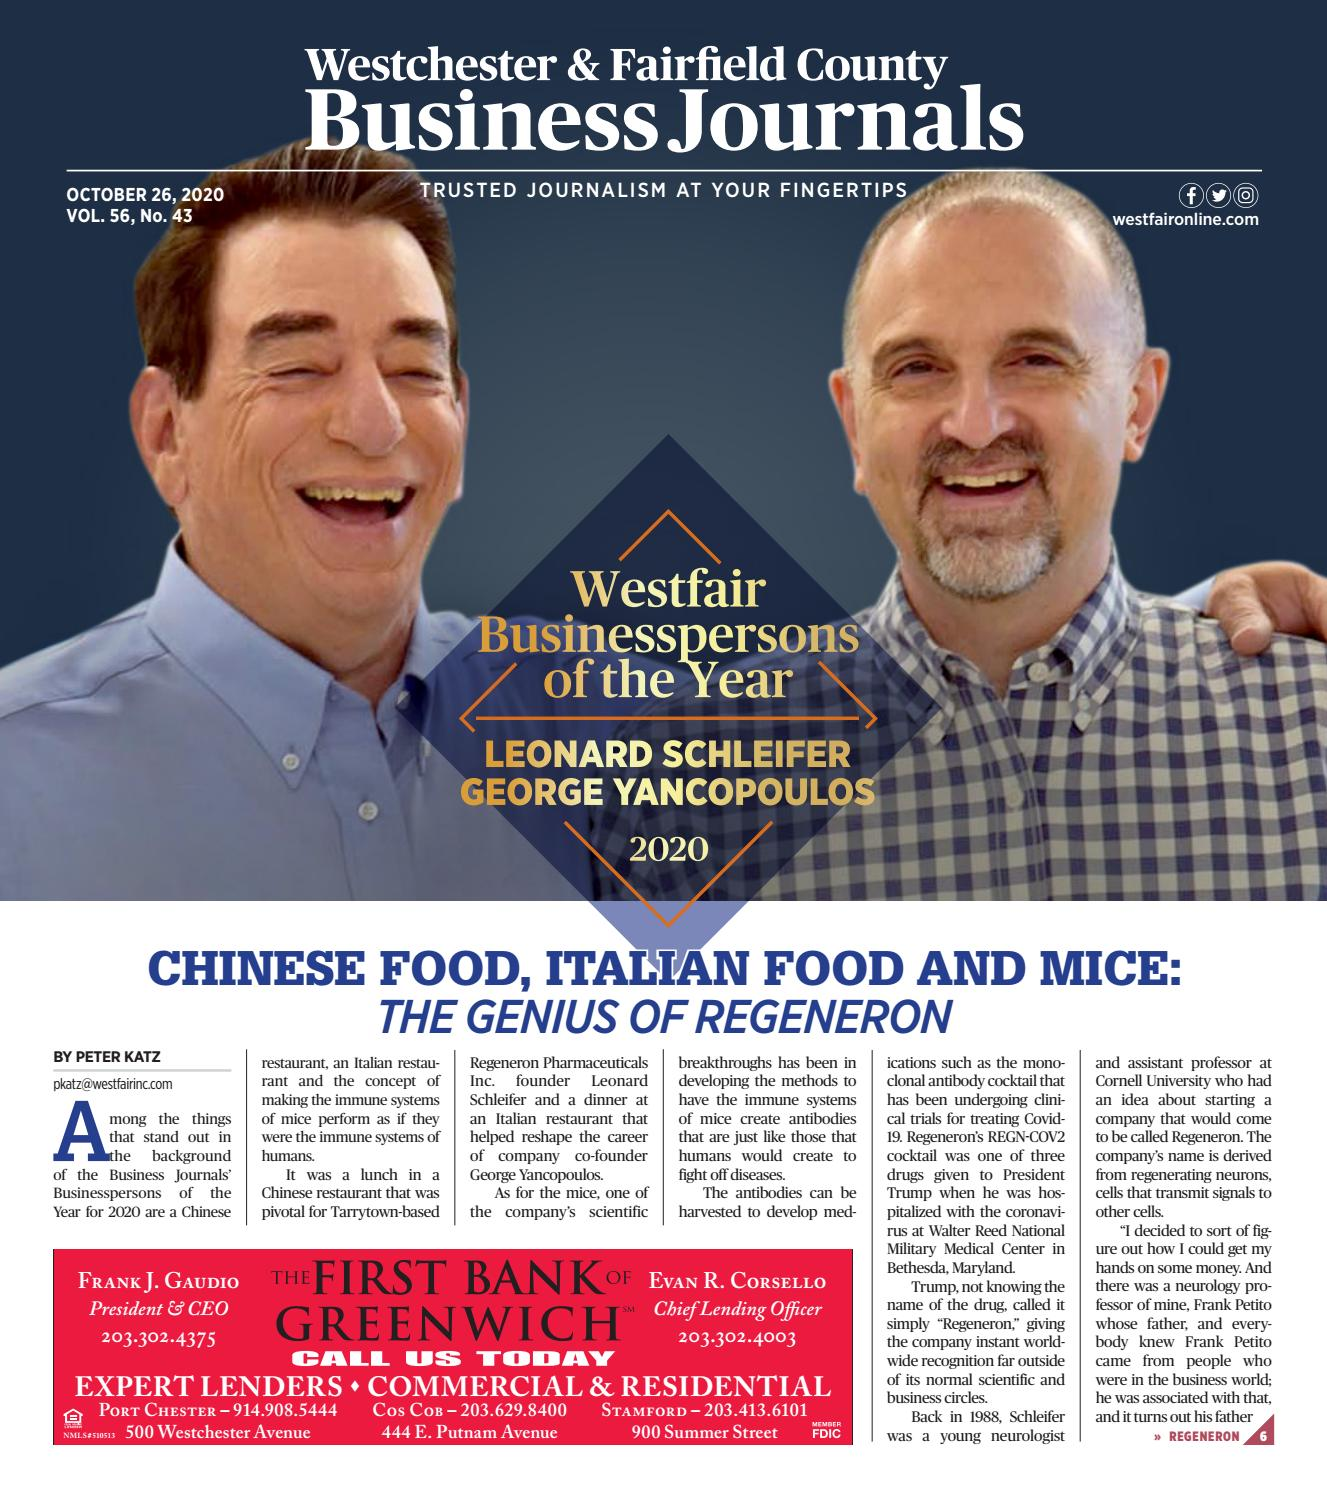 Business Journals Week Of October 26 By Wag Magazine Issuu Cleveland, kansas city, new england, ny jets in last week's retrospective, we saw te's finally perform in line with their predicted tiers. business journals week of october 26